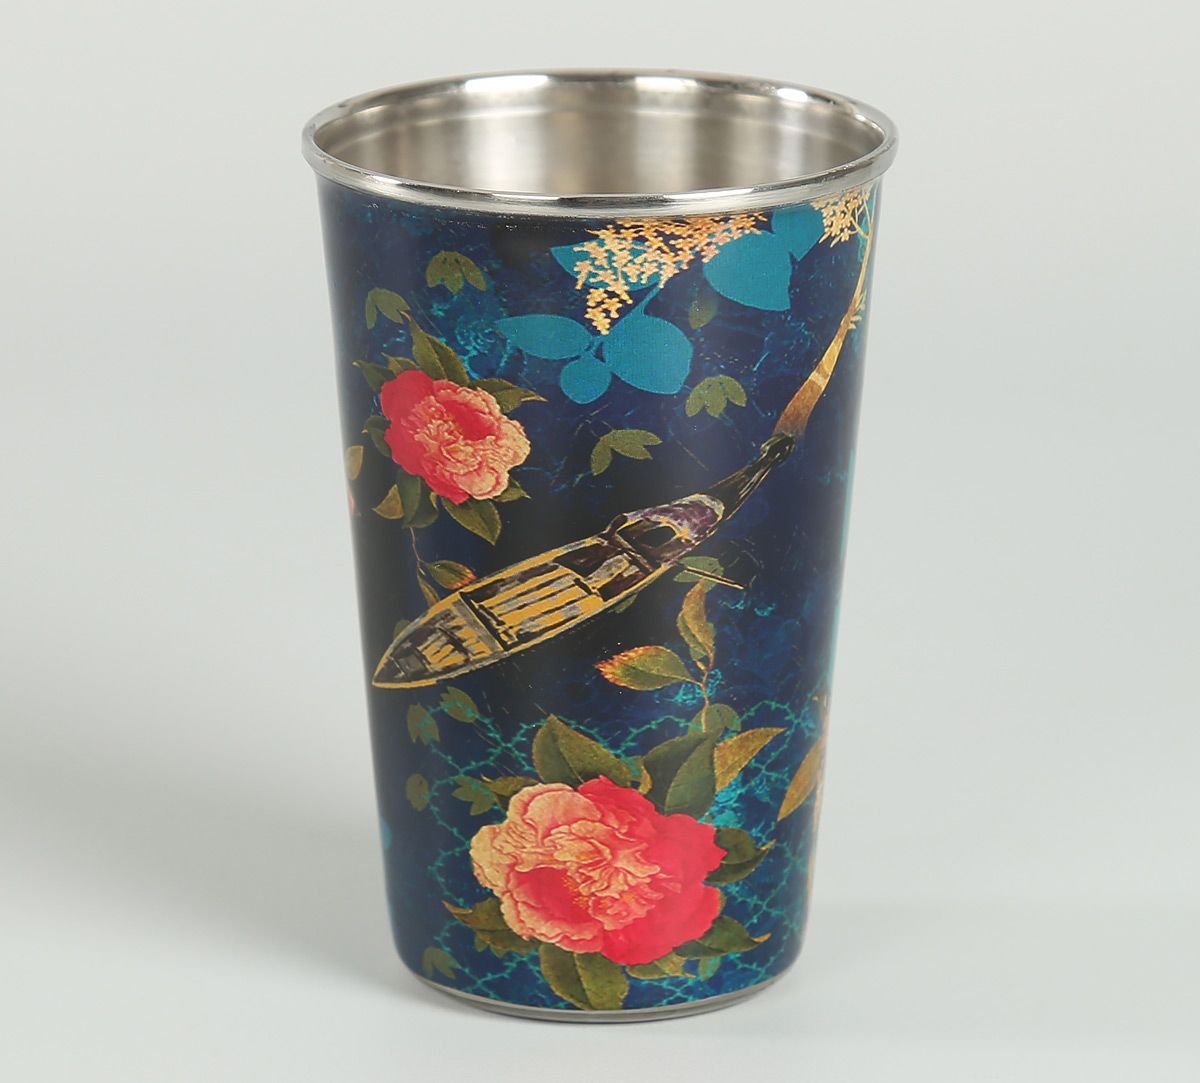 India Circus Blue Floral Lake Inception Steel Tumbler (Set of 2)